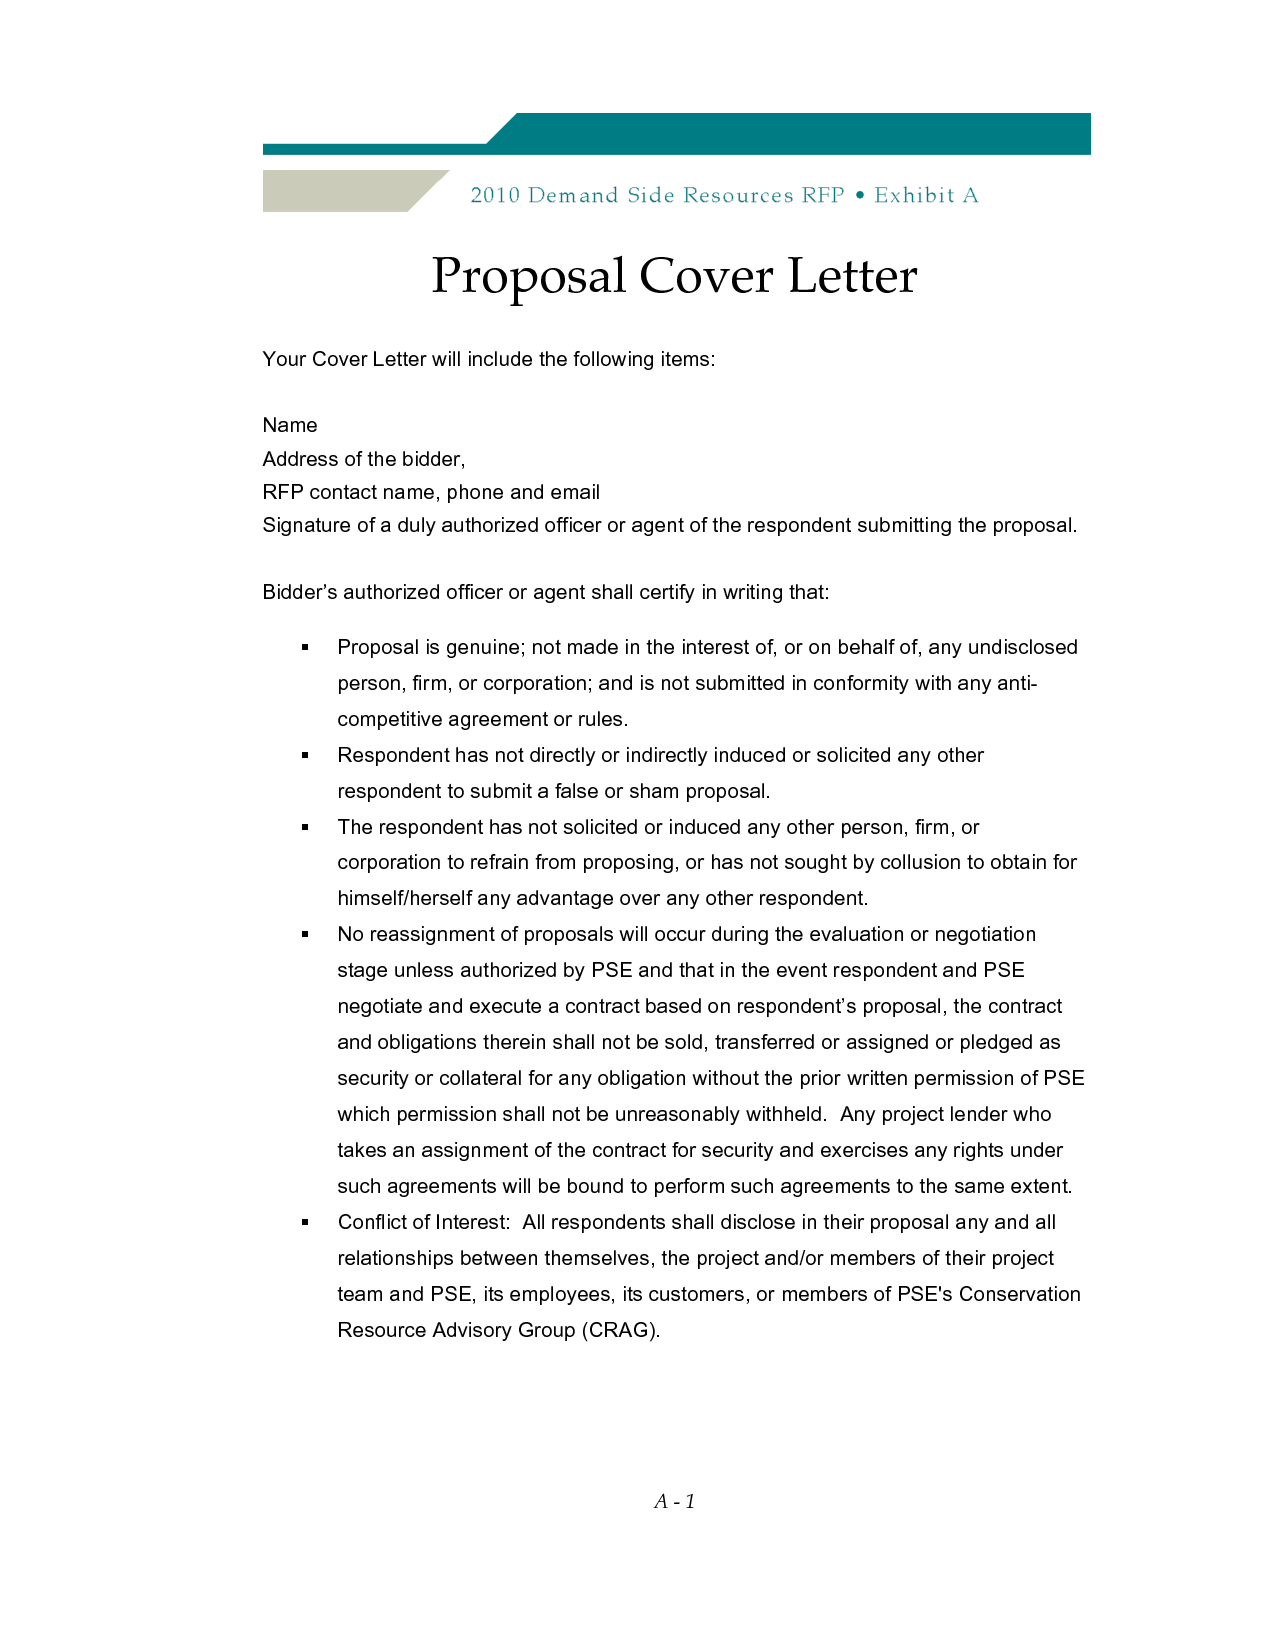 Sample Proposal Cover Letter